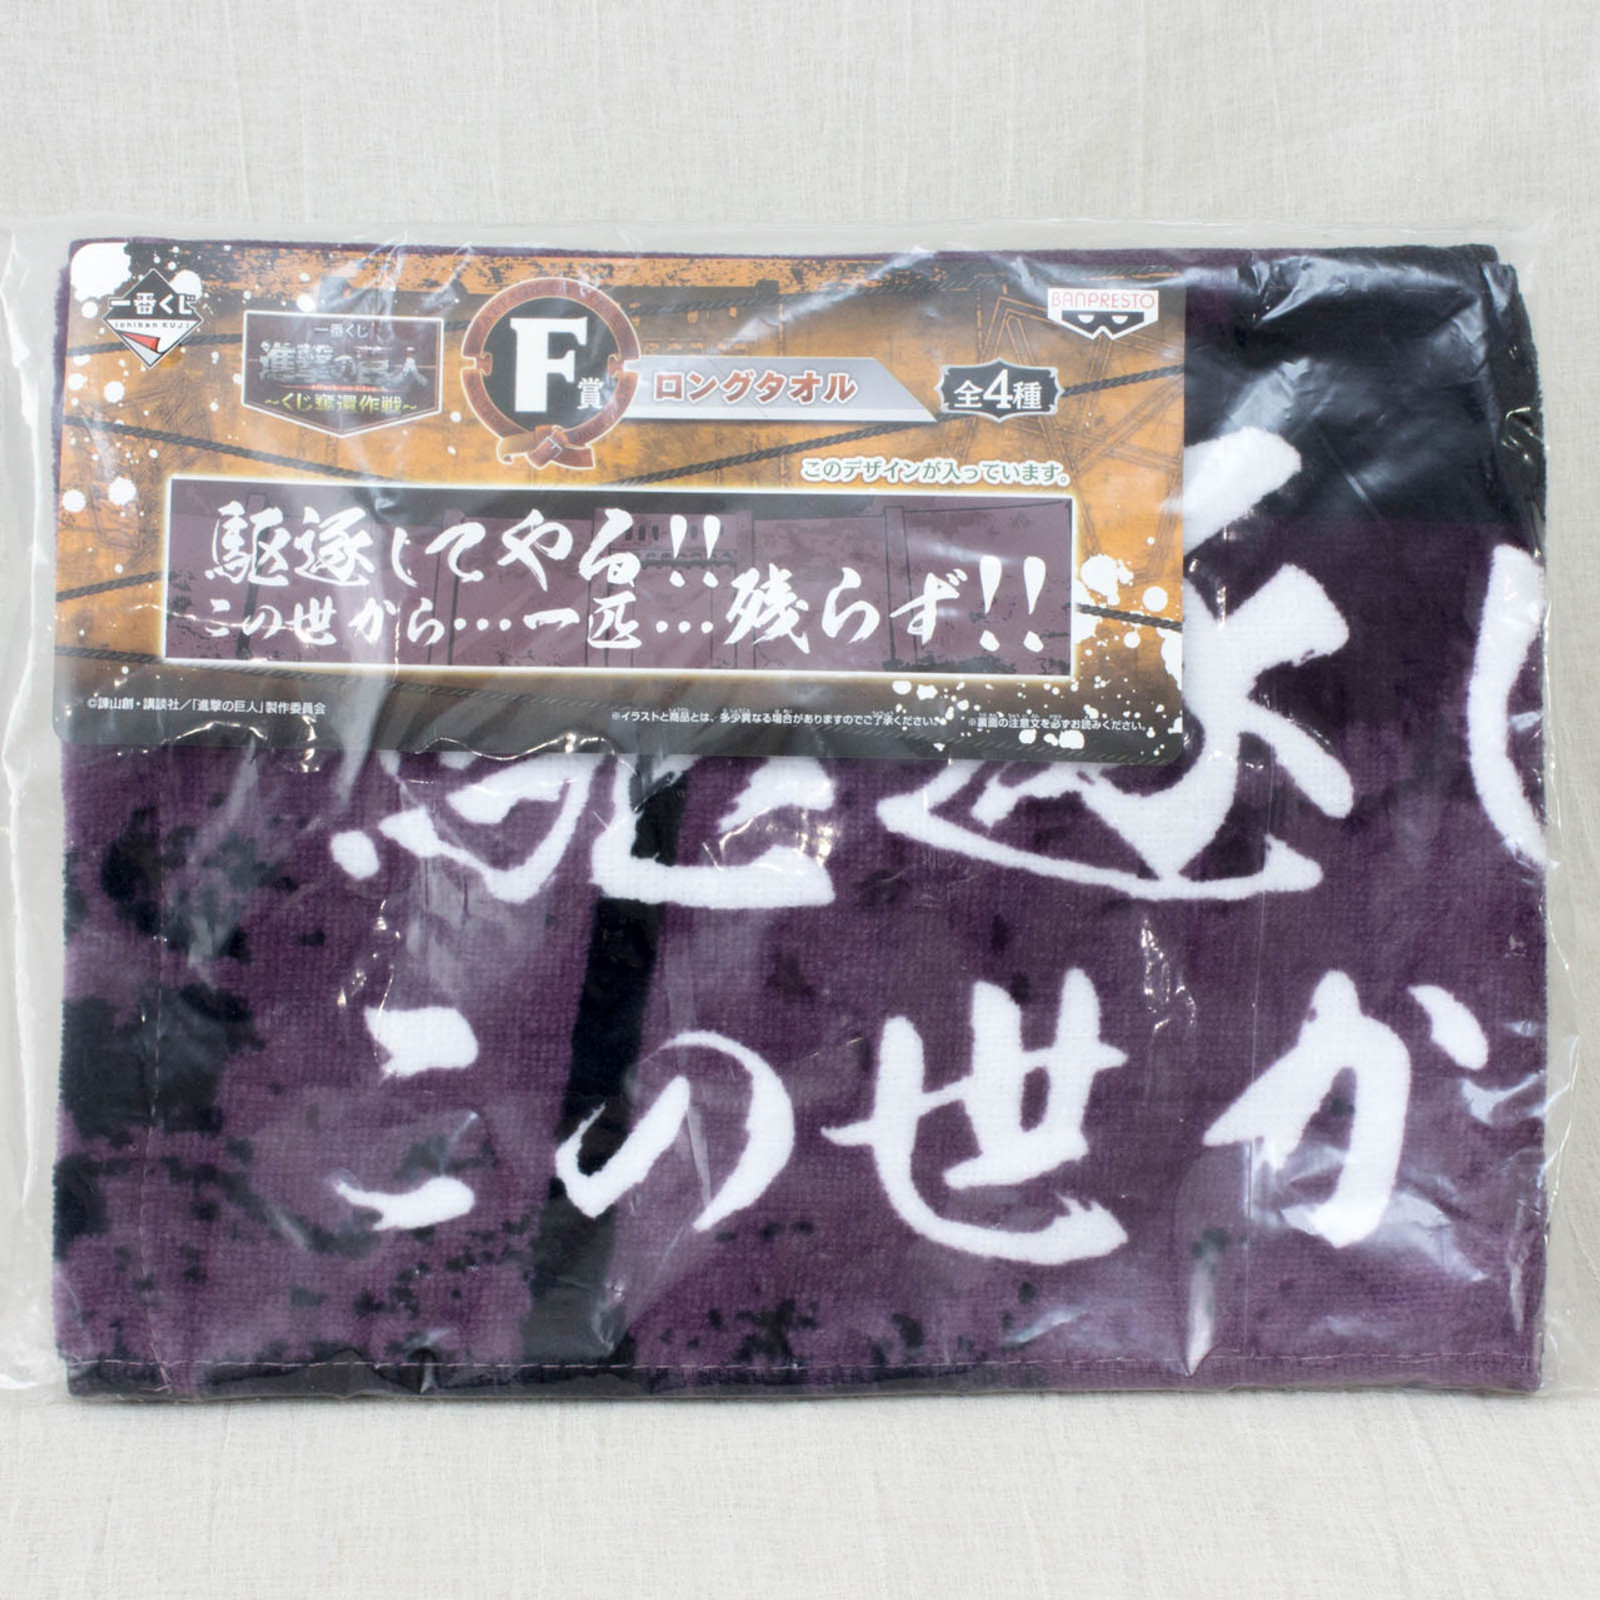 Attack on Titan Long Towel 40 inch Purple Banpresto JAPAN ANIME MANGA